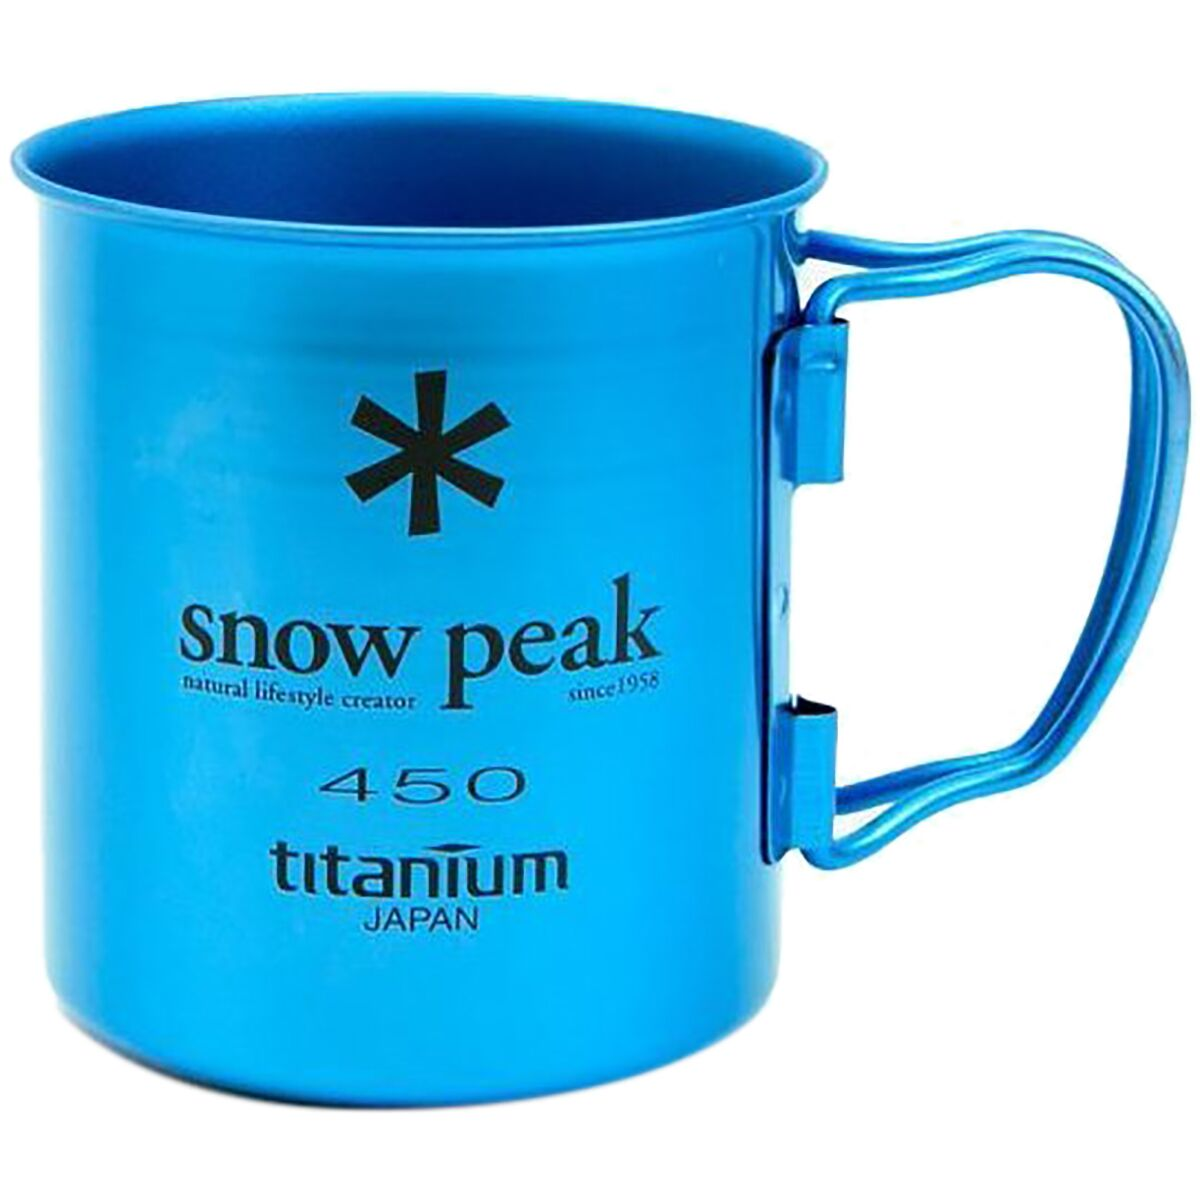 photo: Snow Peak Ti-Single 450 Colored Cup cup/mug